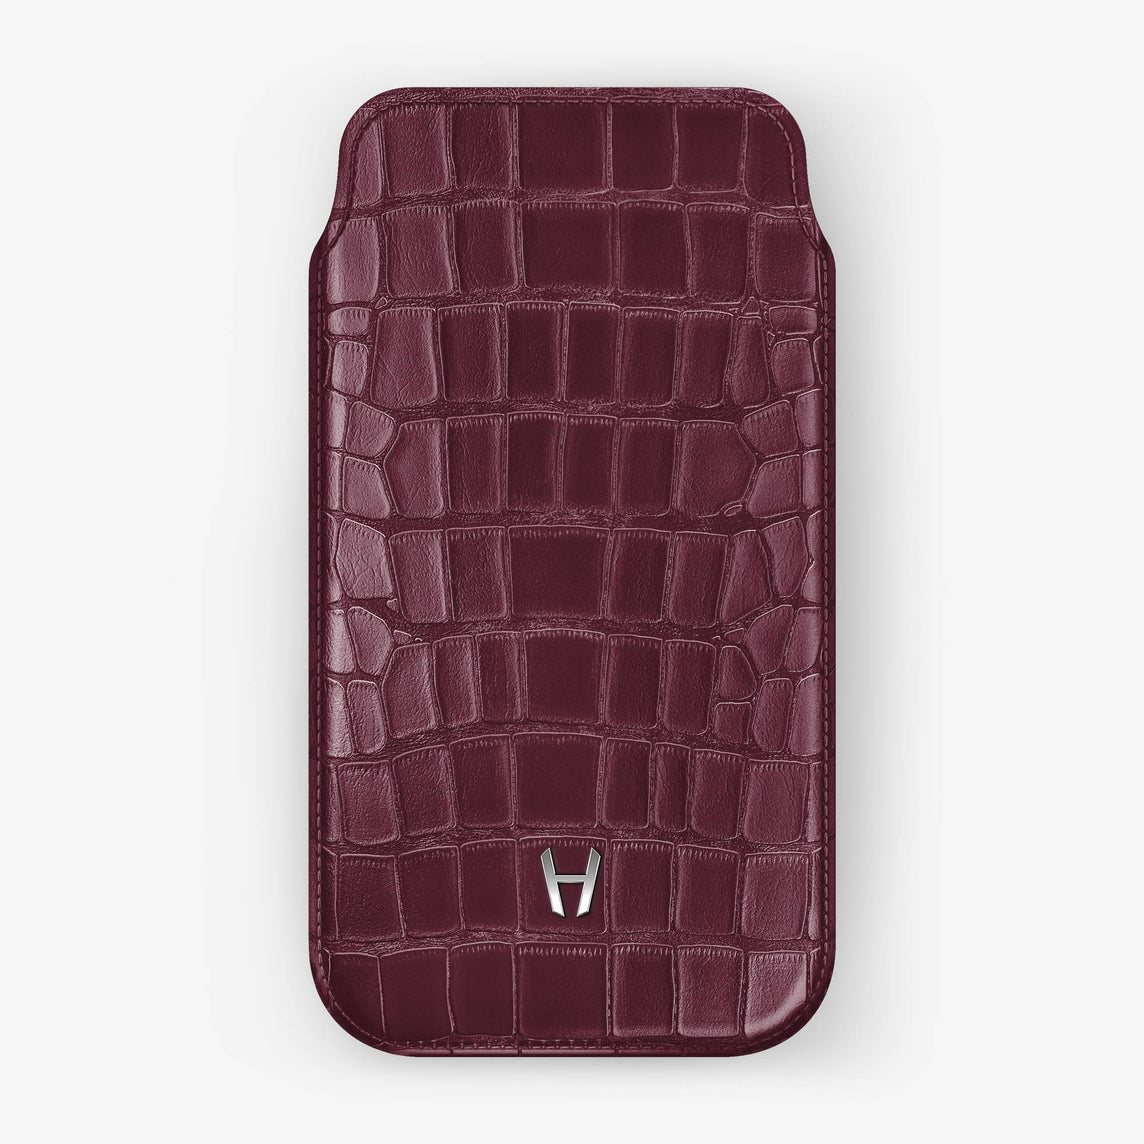 Alligator [iPhone Sleeve Case] [model:iphone-xsmax-case] [colour:burgundy] [finishing:stainless-steel]